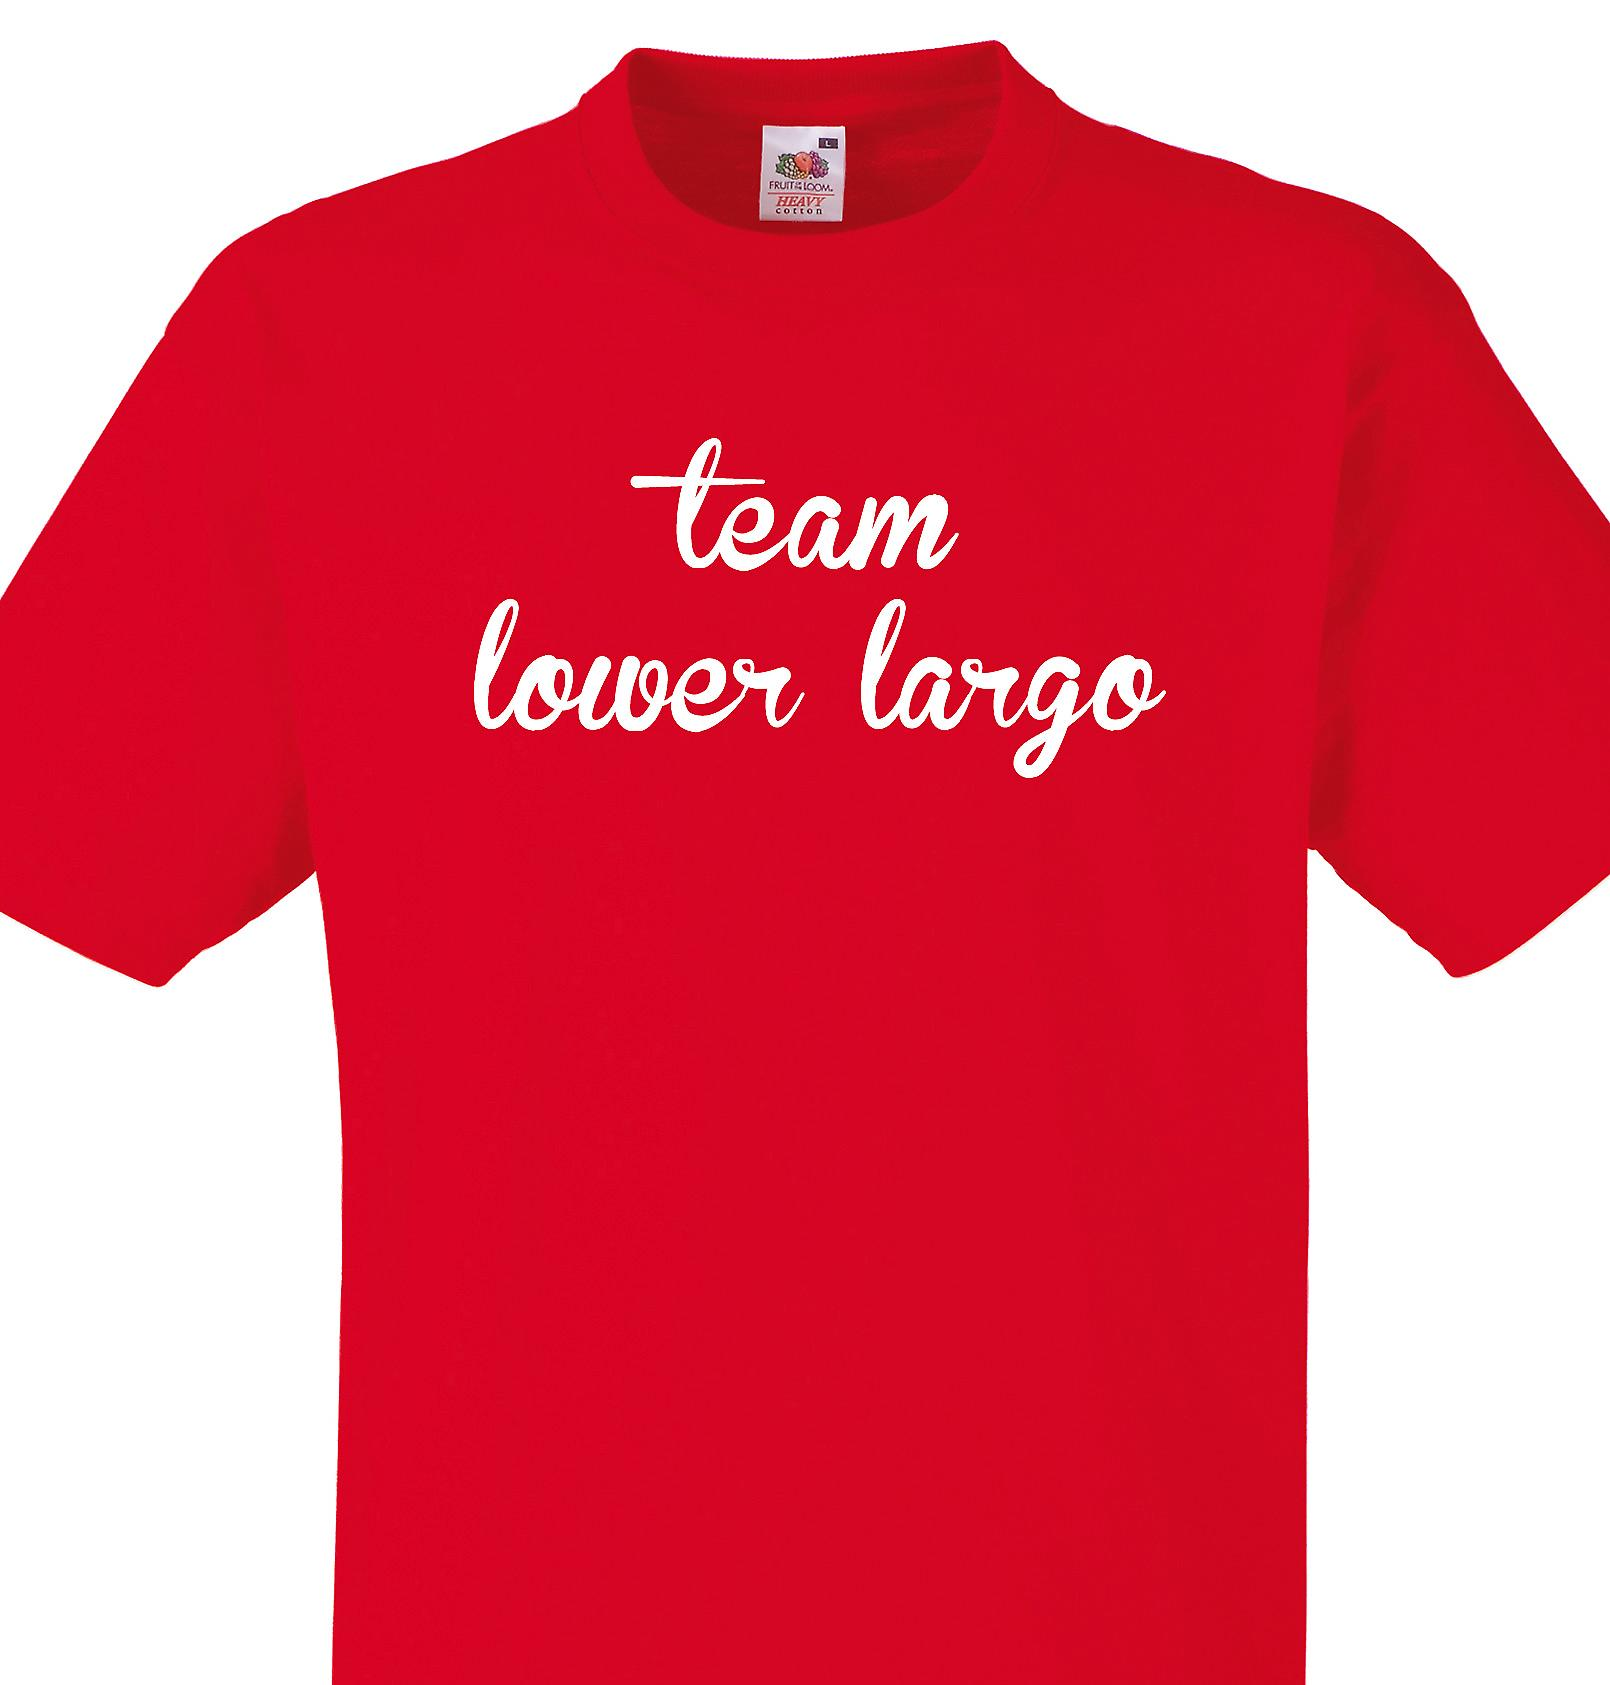 Team Lower largo Red T shirt